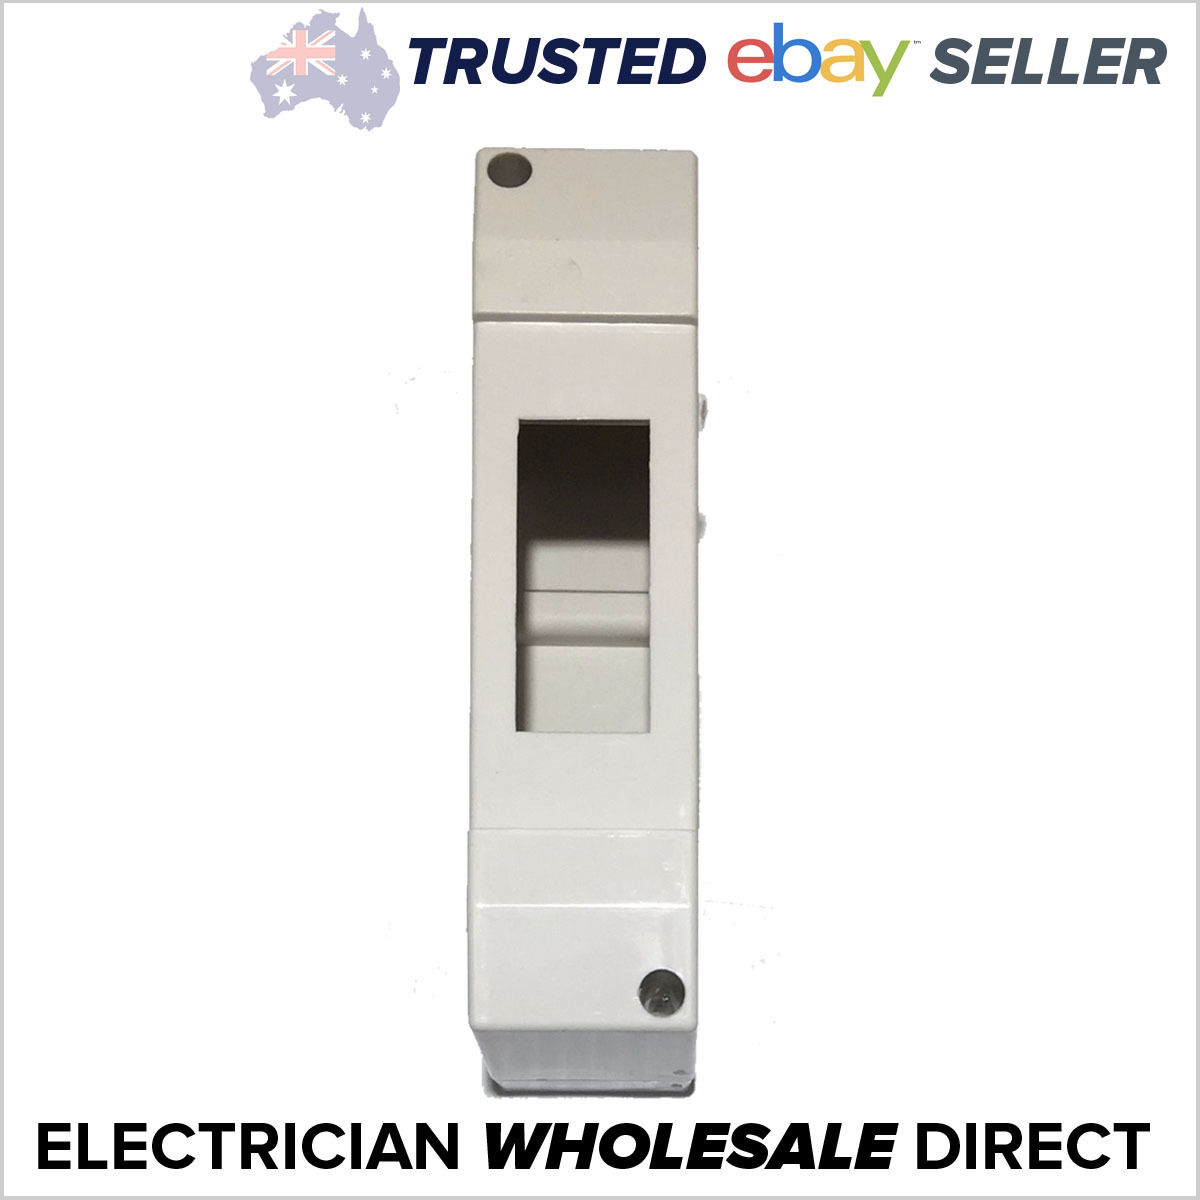 brand new 1 pole enclosure box for circuit breakers switchboard